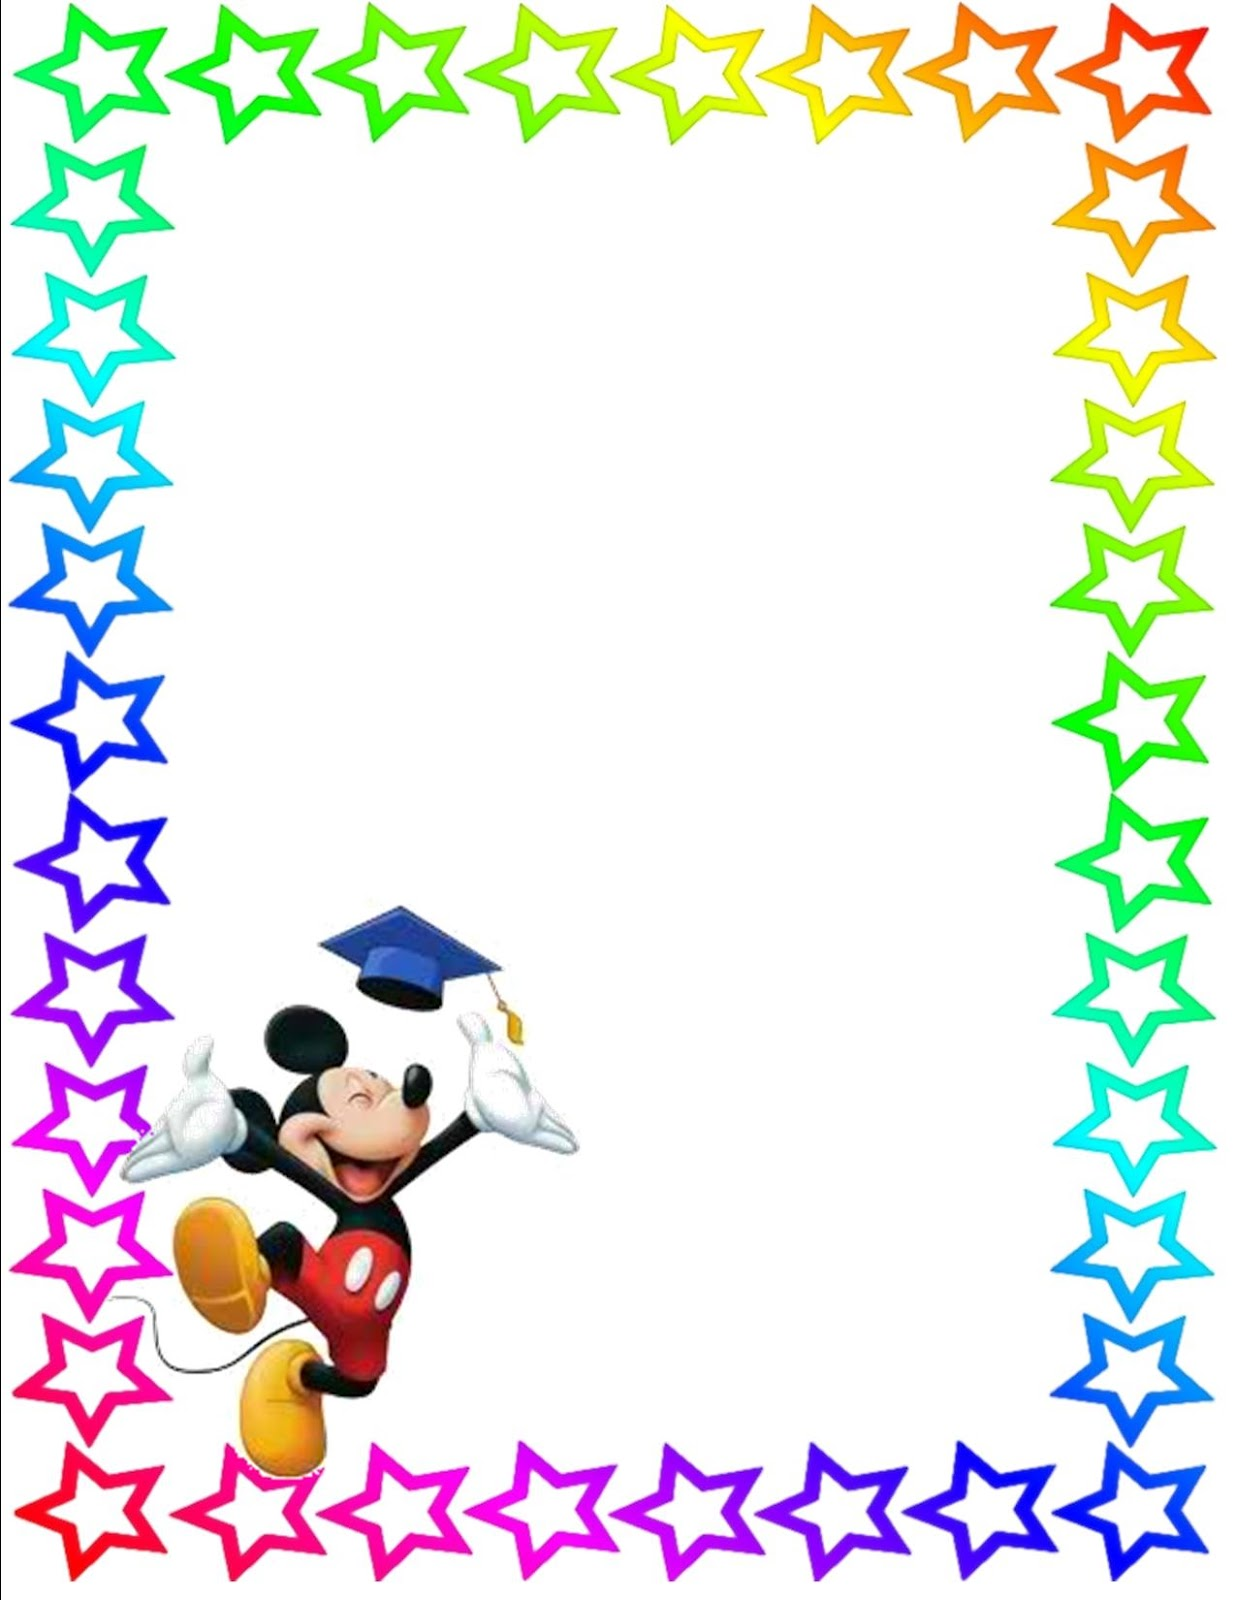 hight resolution of free downloadable stationery borders clipart best